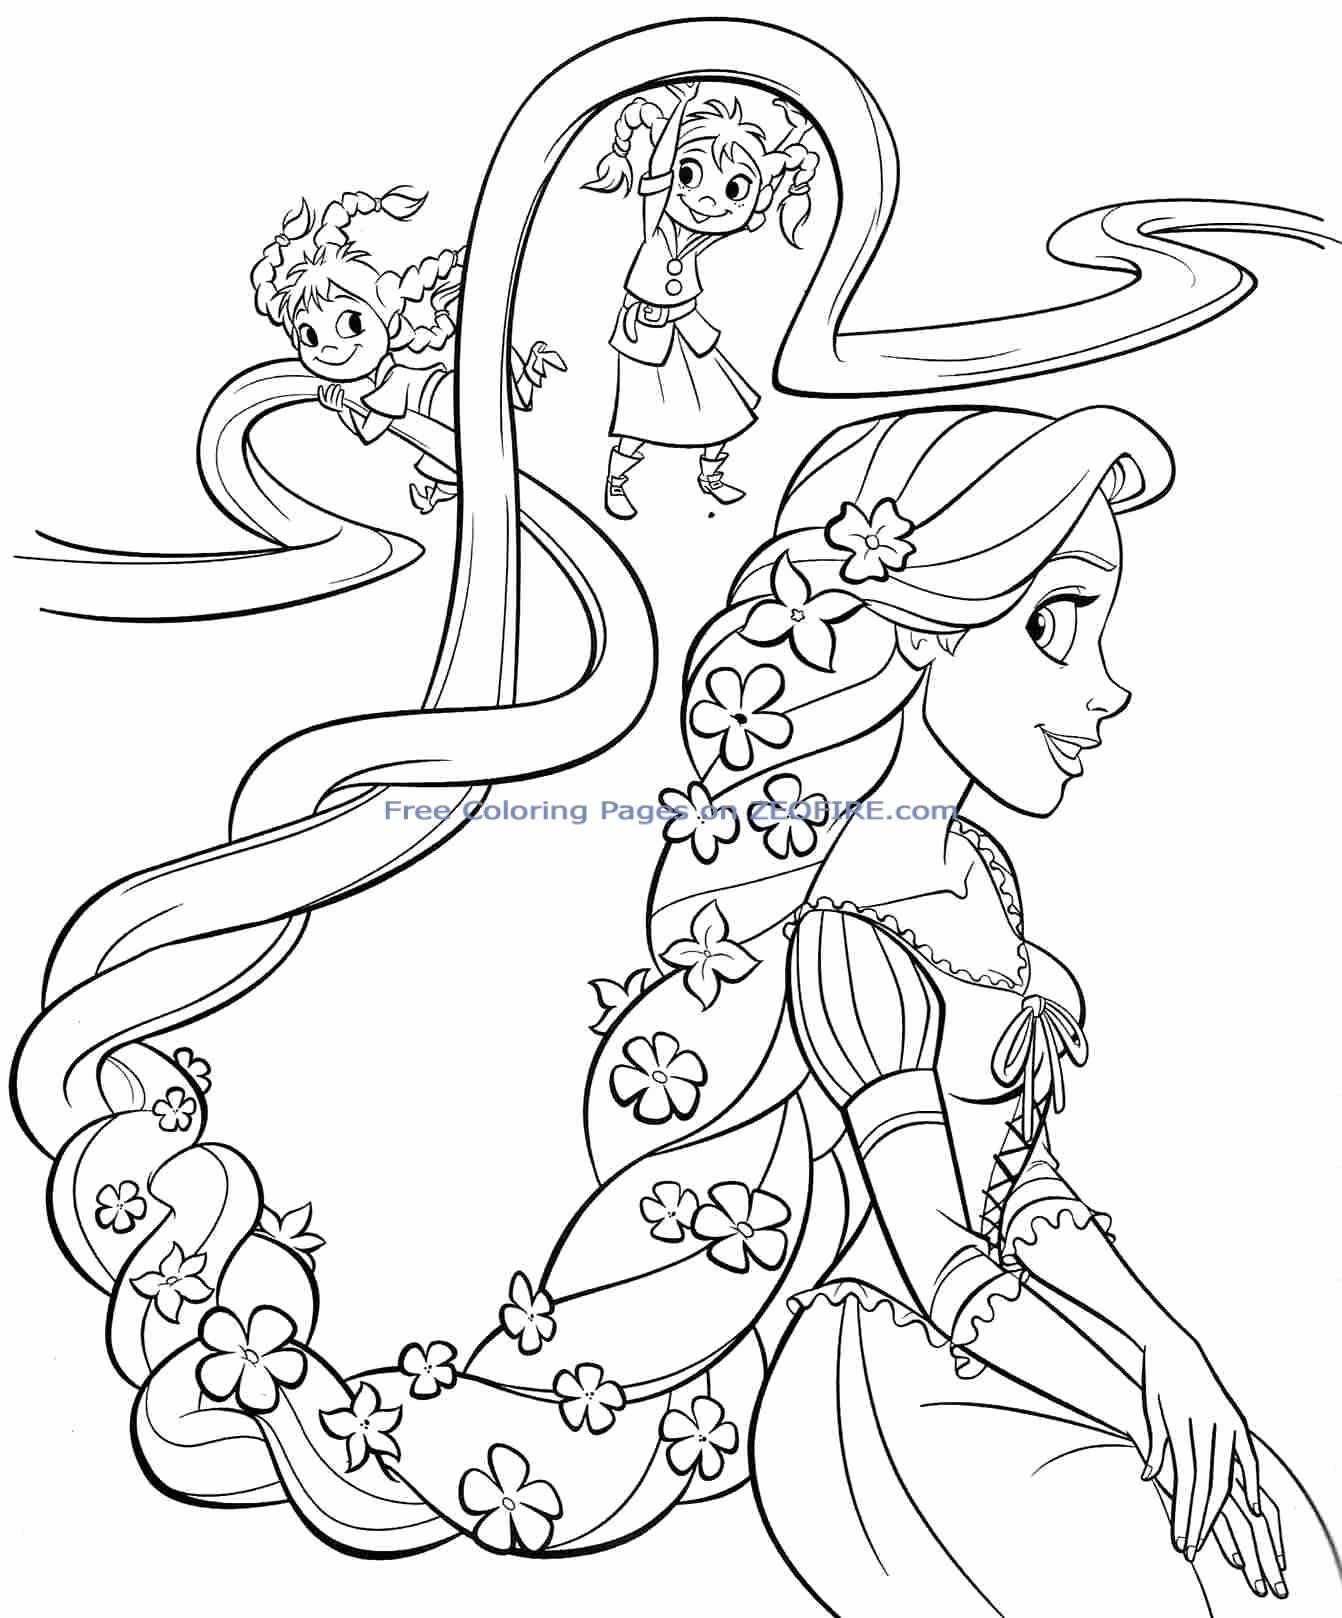 Disney Coloring Sheets Pdf Luxury Coloring Sheets 42 Staggering Printable Princess In 2020 Tangled Coloring Pages Disney Coloring Sheets Disney Princess Coloring Pages